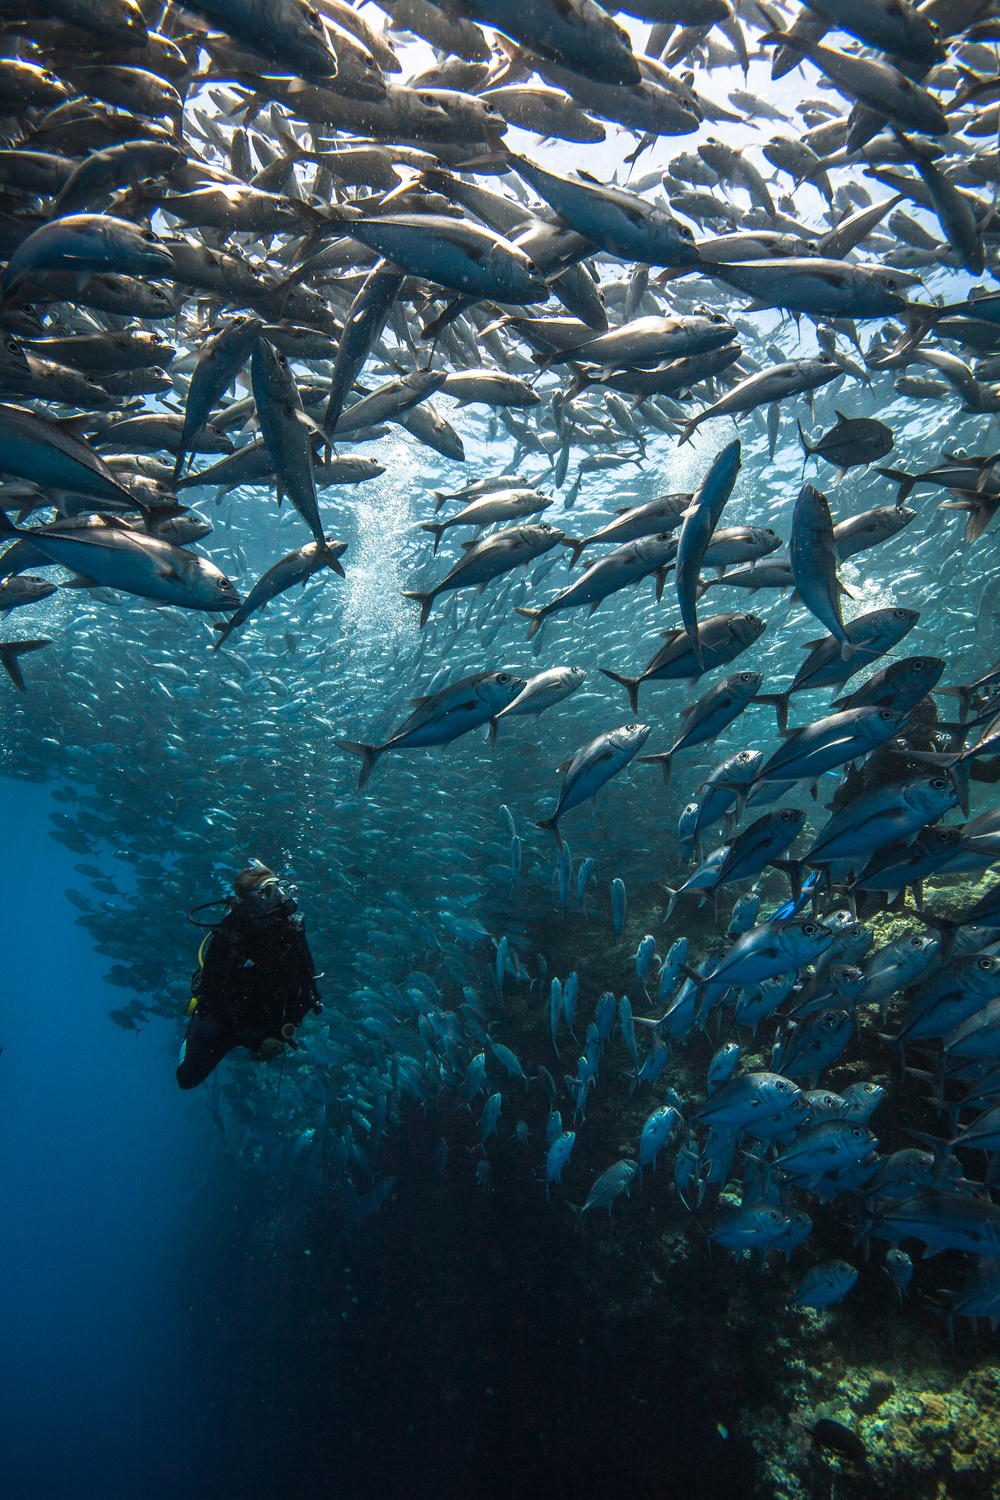 A diver in a cloud of jackfish over shallow reef